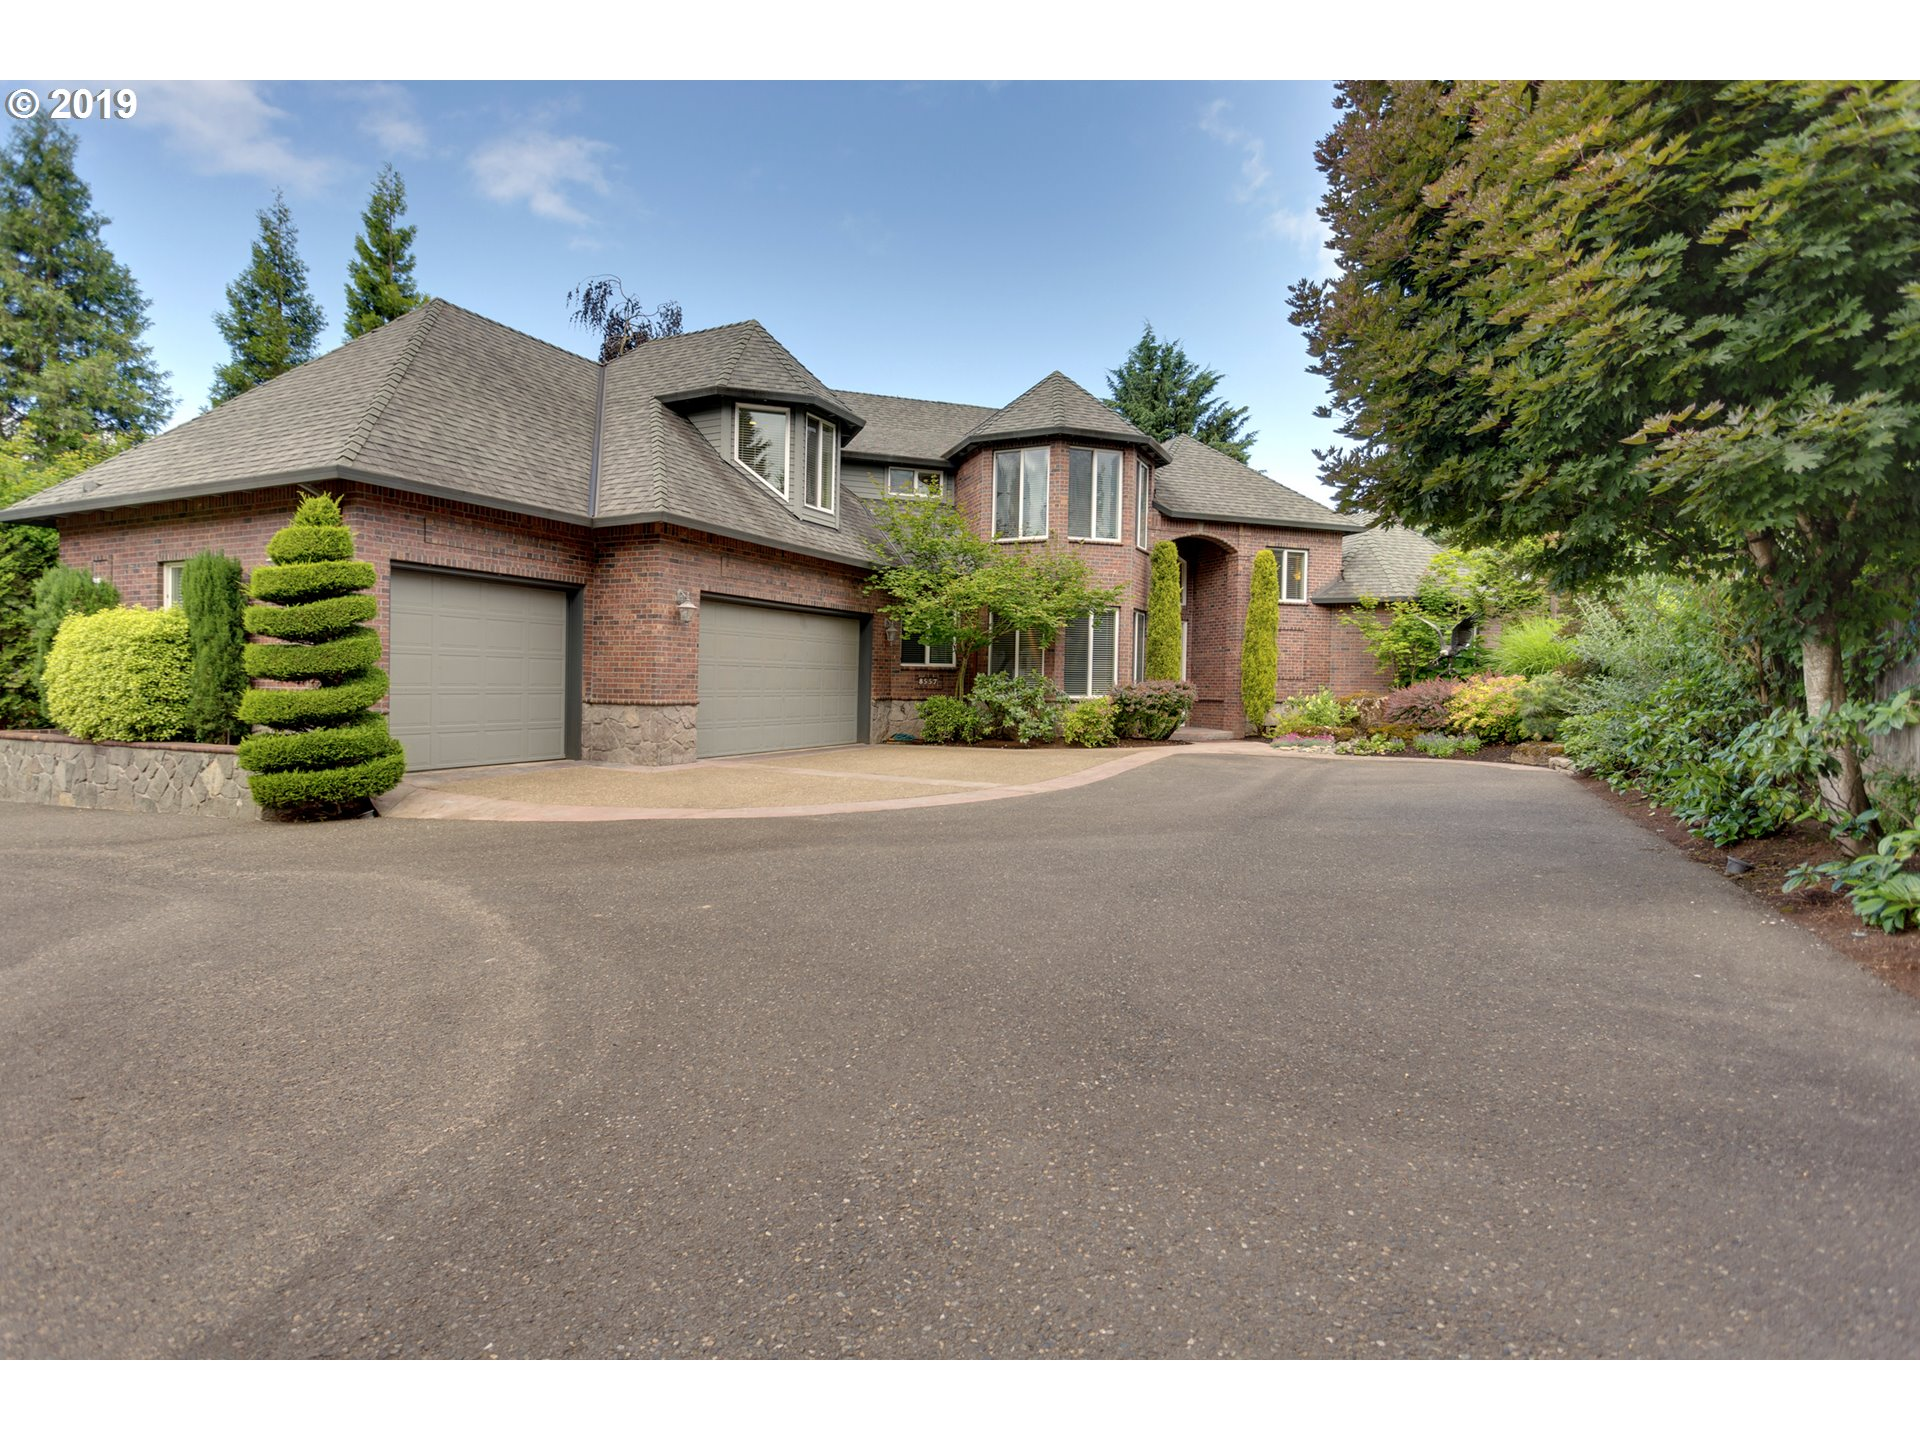 Custom built close-in Beaverton home on 1/2 acre designed ideally for entertaining & busy families. Beautiful professional landscape creates a private oasis with pool, koi pond & spa. Master on main w/ 4 bdrms upstairs, each with it/s own sink to ease hectic school mornings. Laundry rms on both floors. Close to Jesuit and OES. Easy access to Nike, Intel & hi-tech corridor. Quarter acre adjacent lot available to purchase.